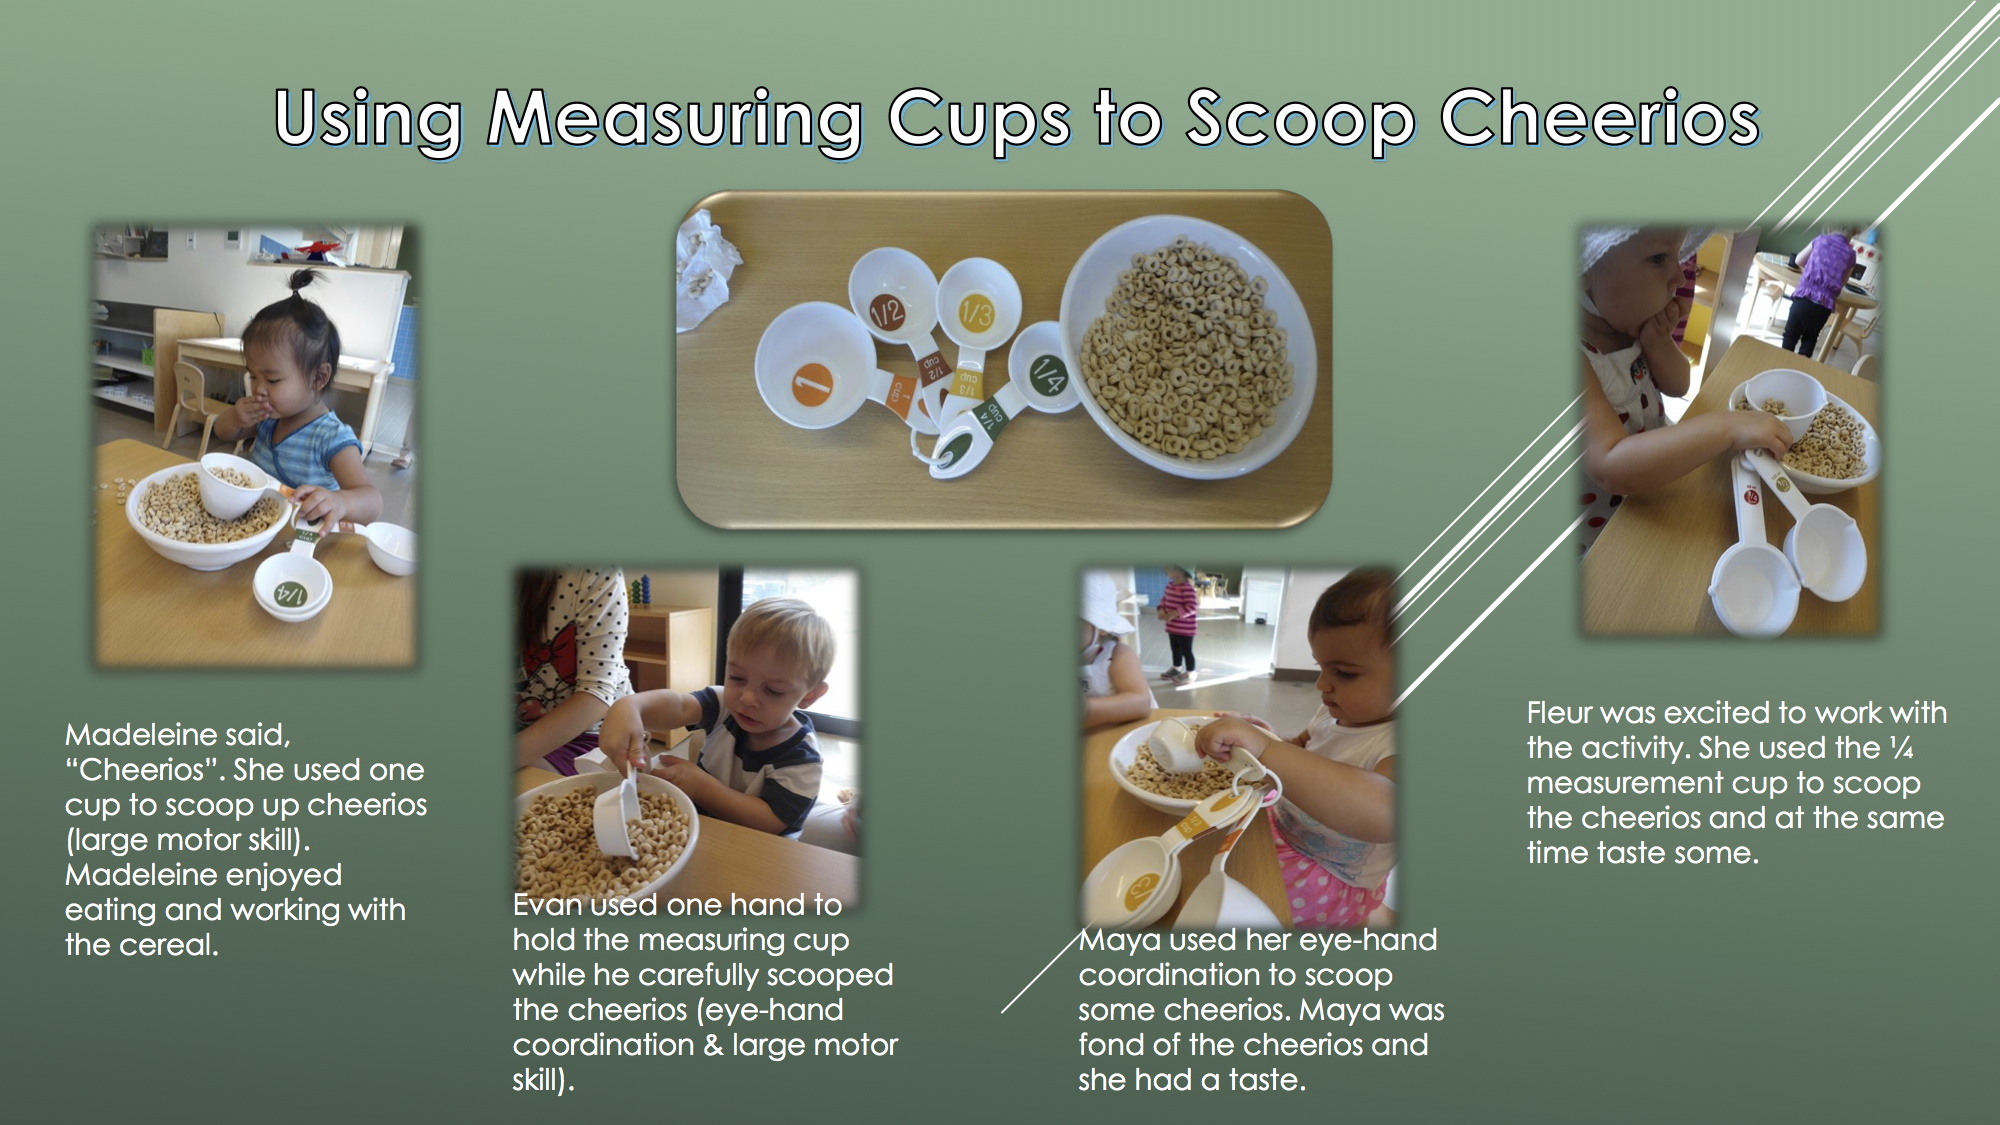 Using Measuring Cups to Scoop Cheerios